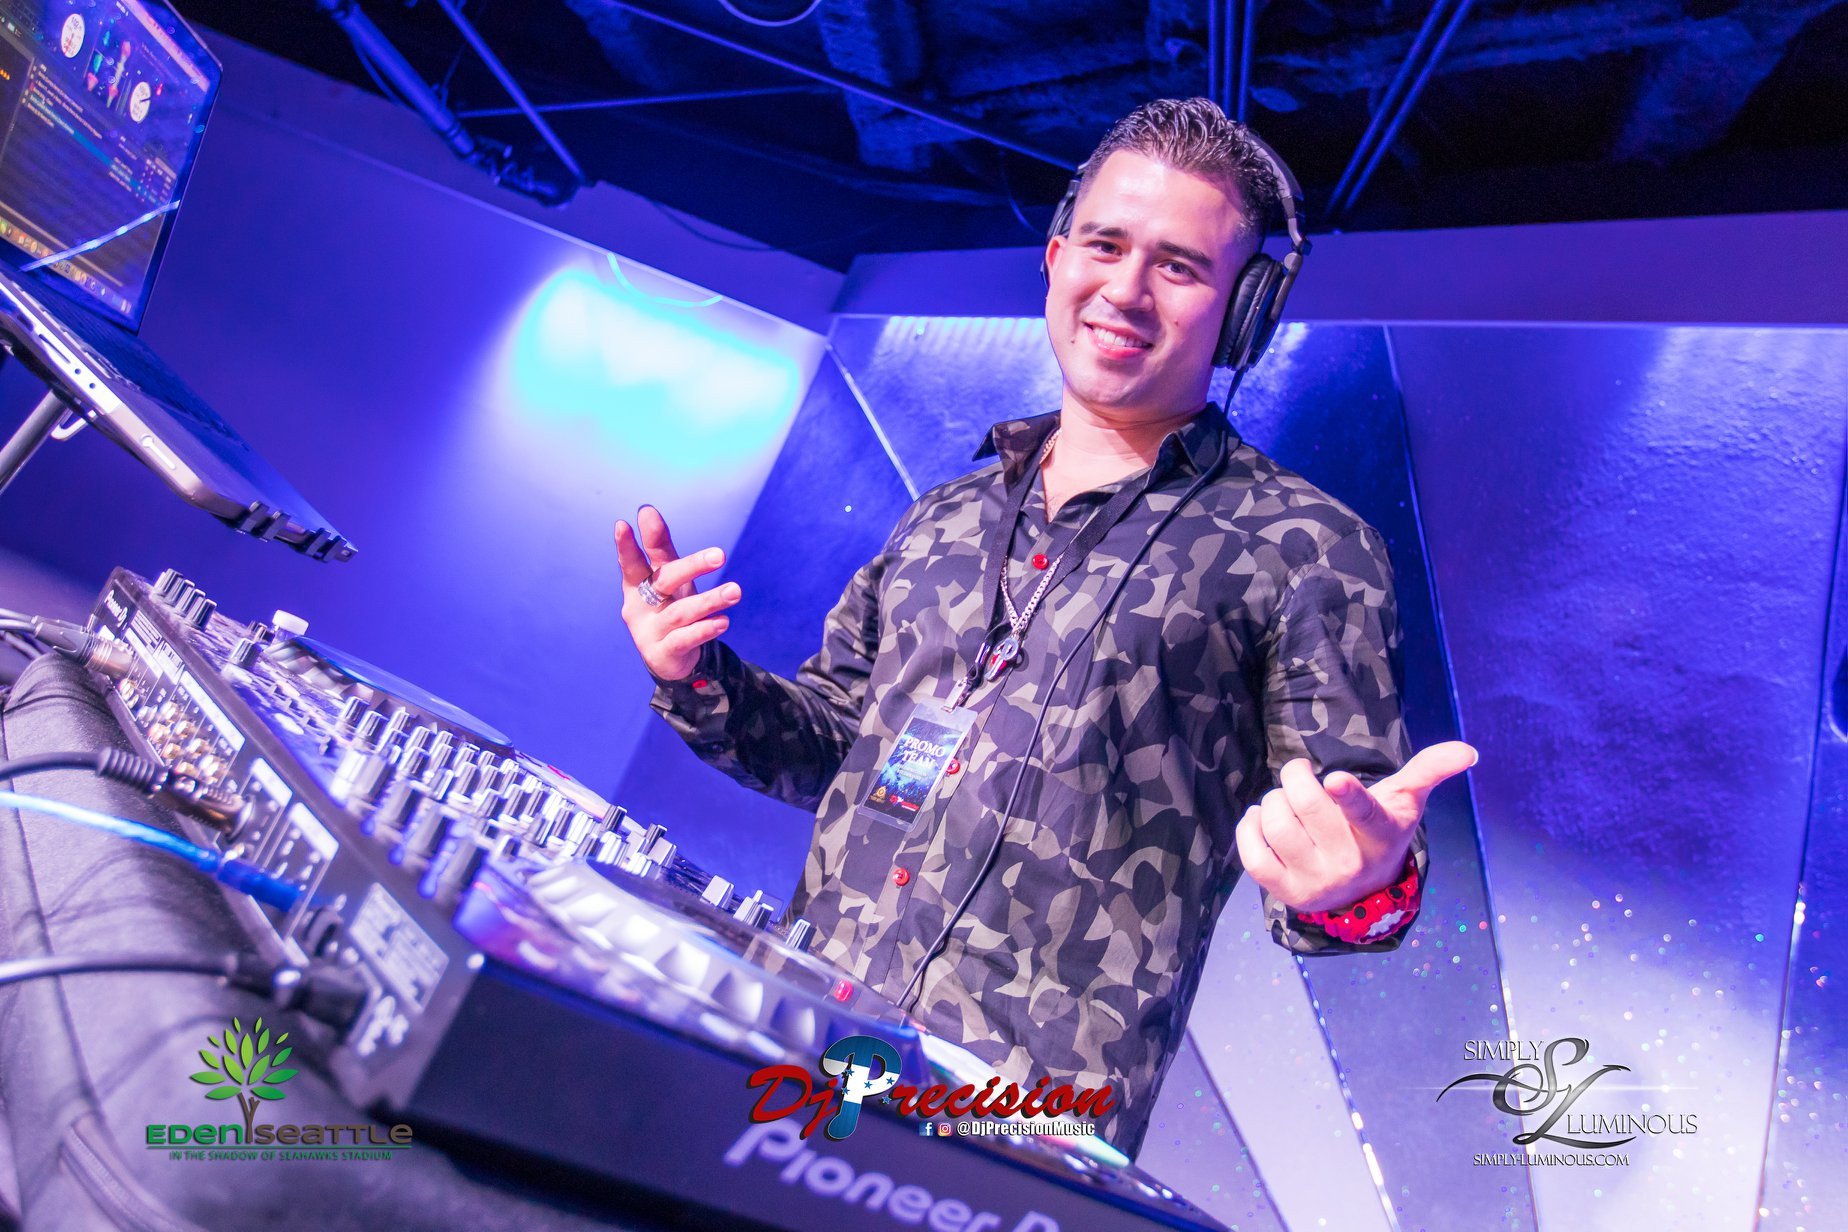 DJ Precision at Eden Nightclub in Seattle.